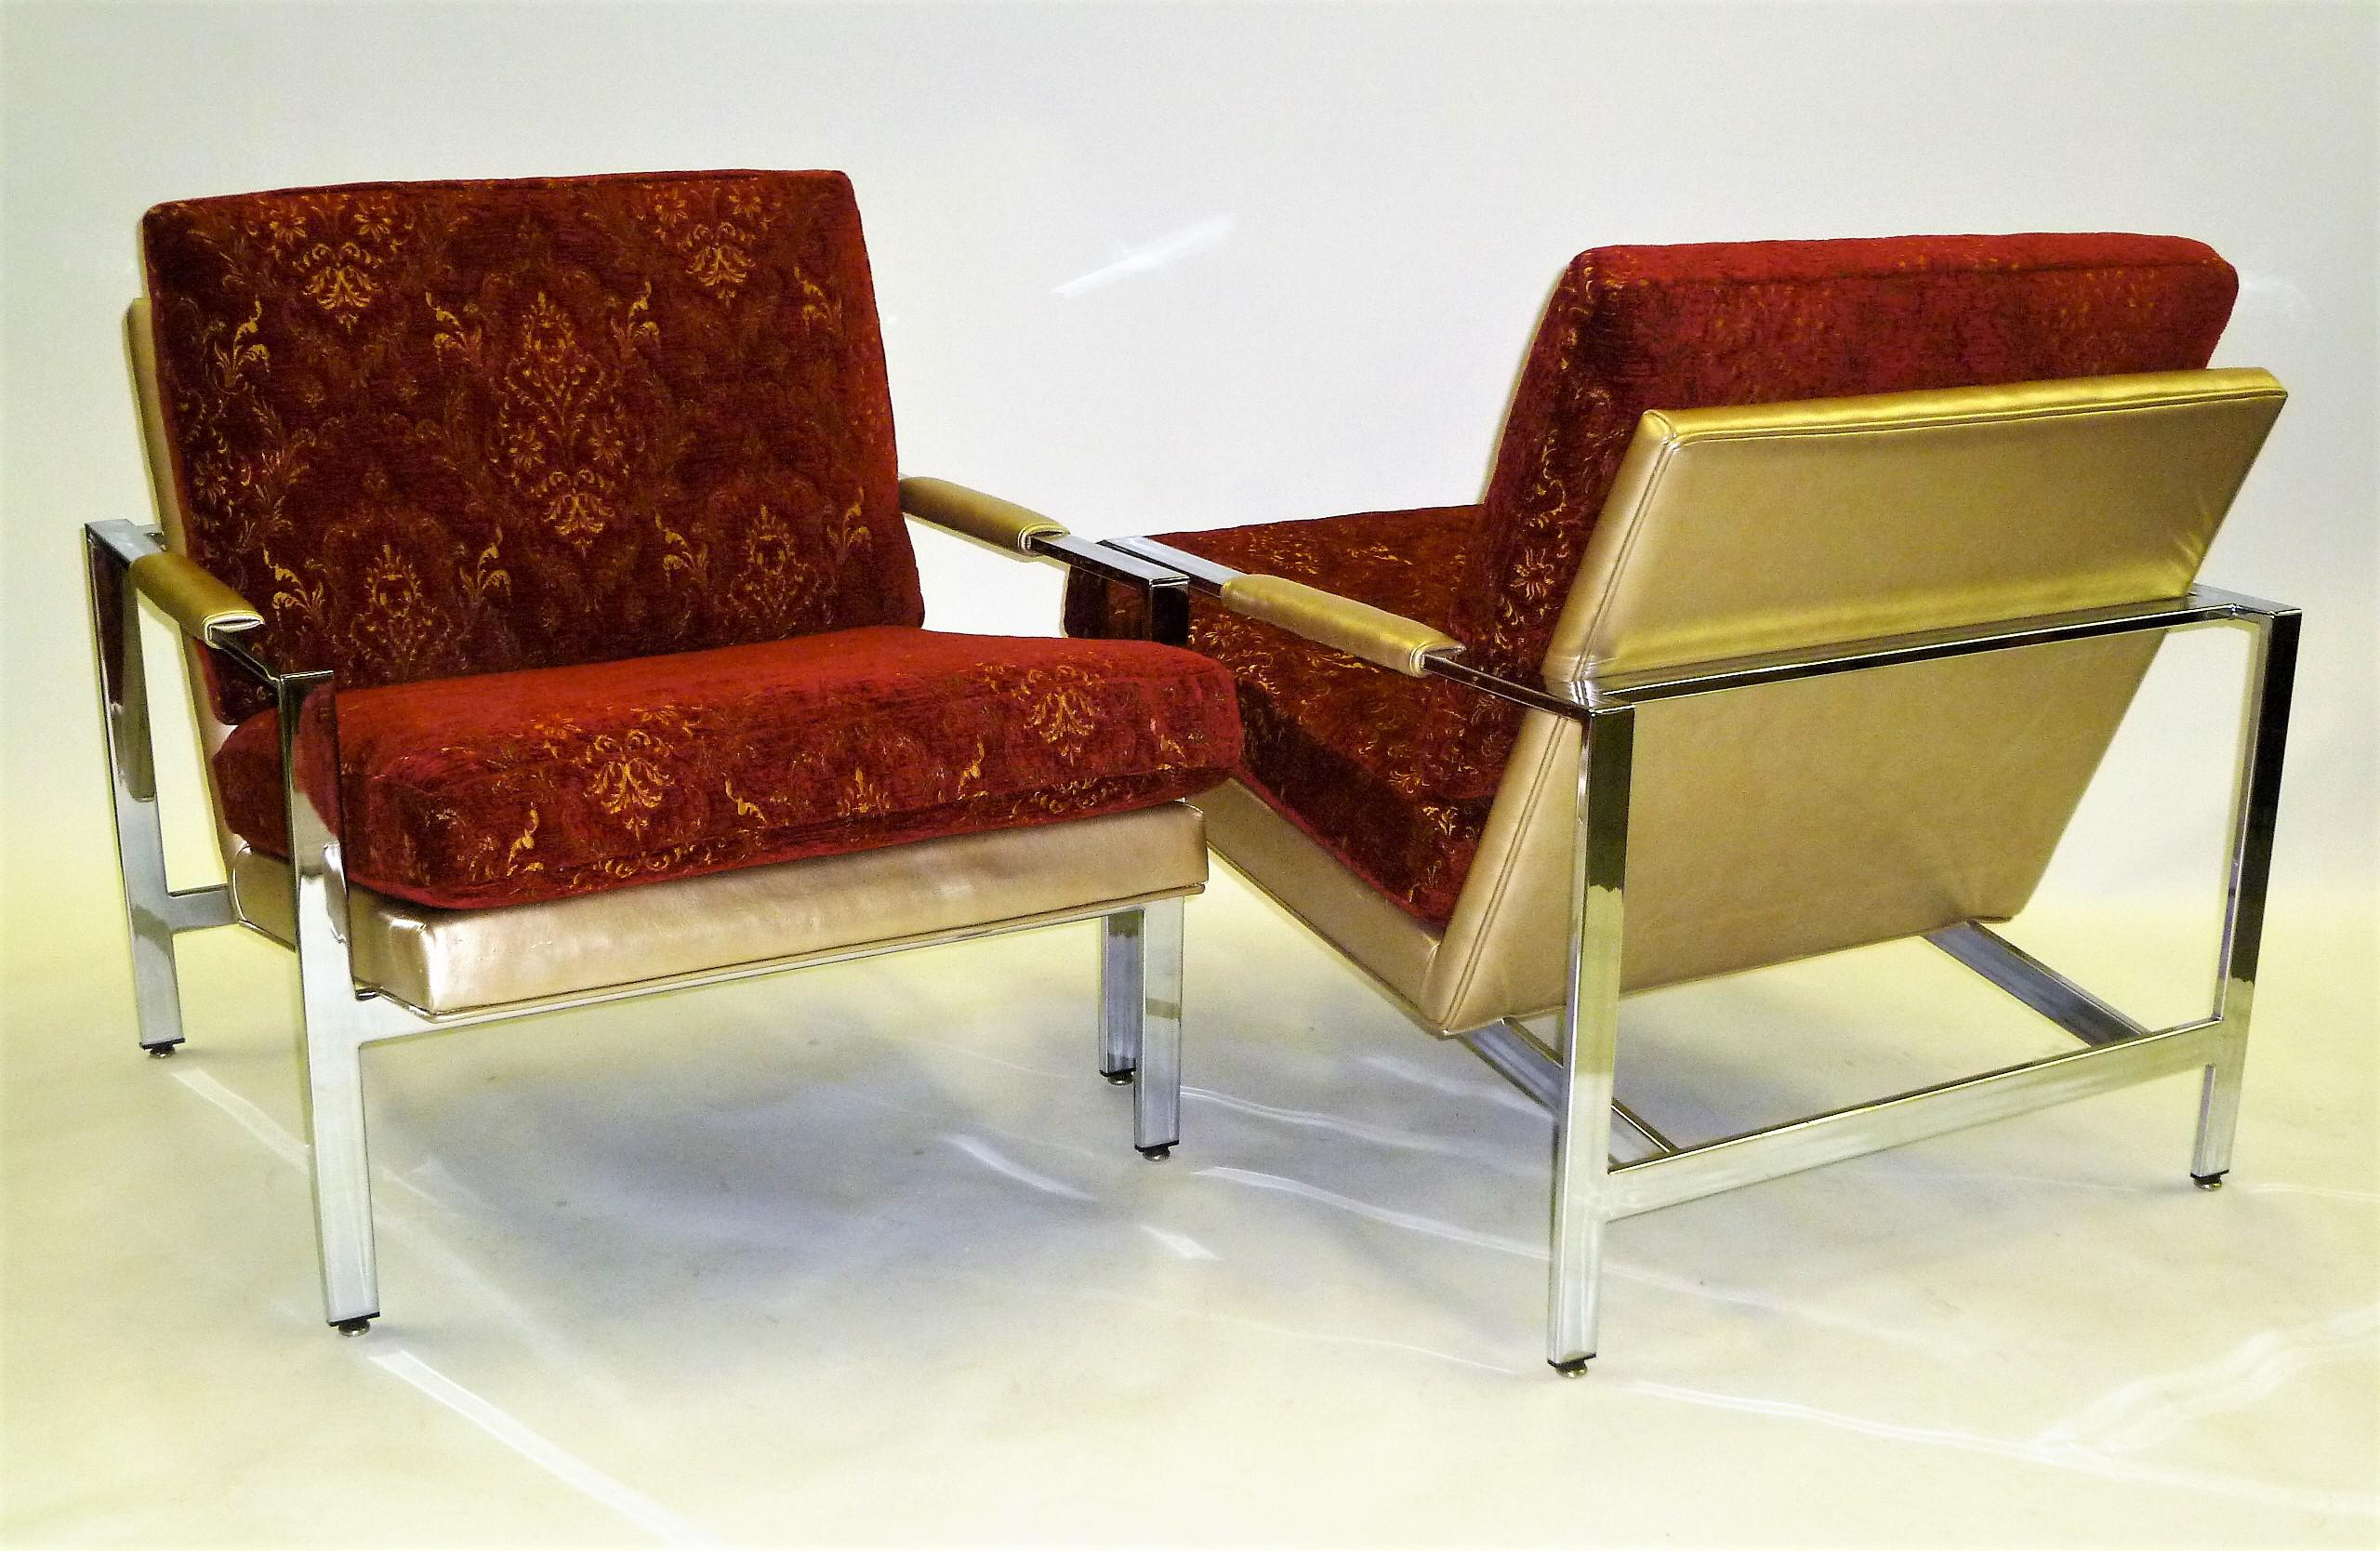 PAIR Milo Baughman Mid Century Modern Iconic Chrome Lounge Chairs For  Thayer Coggin .   Image